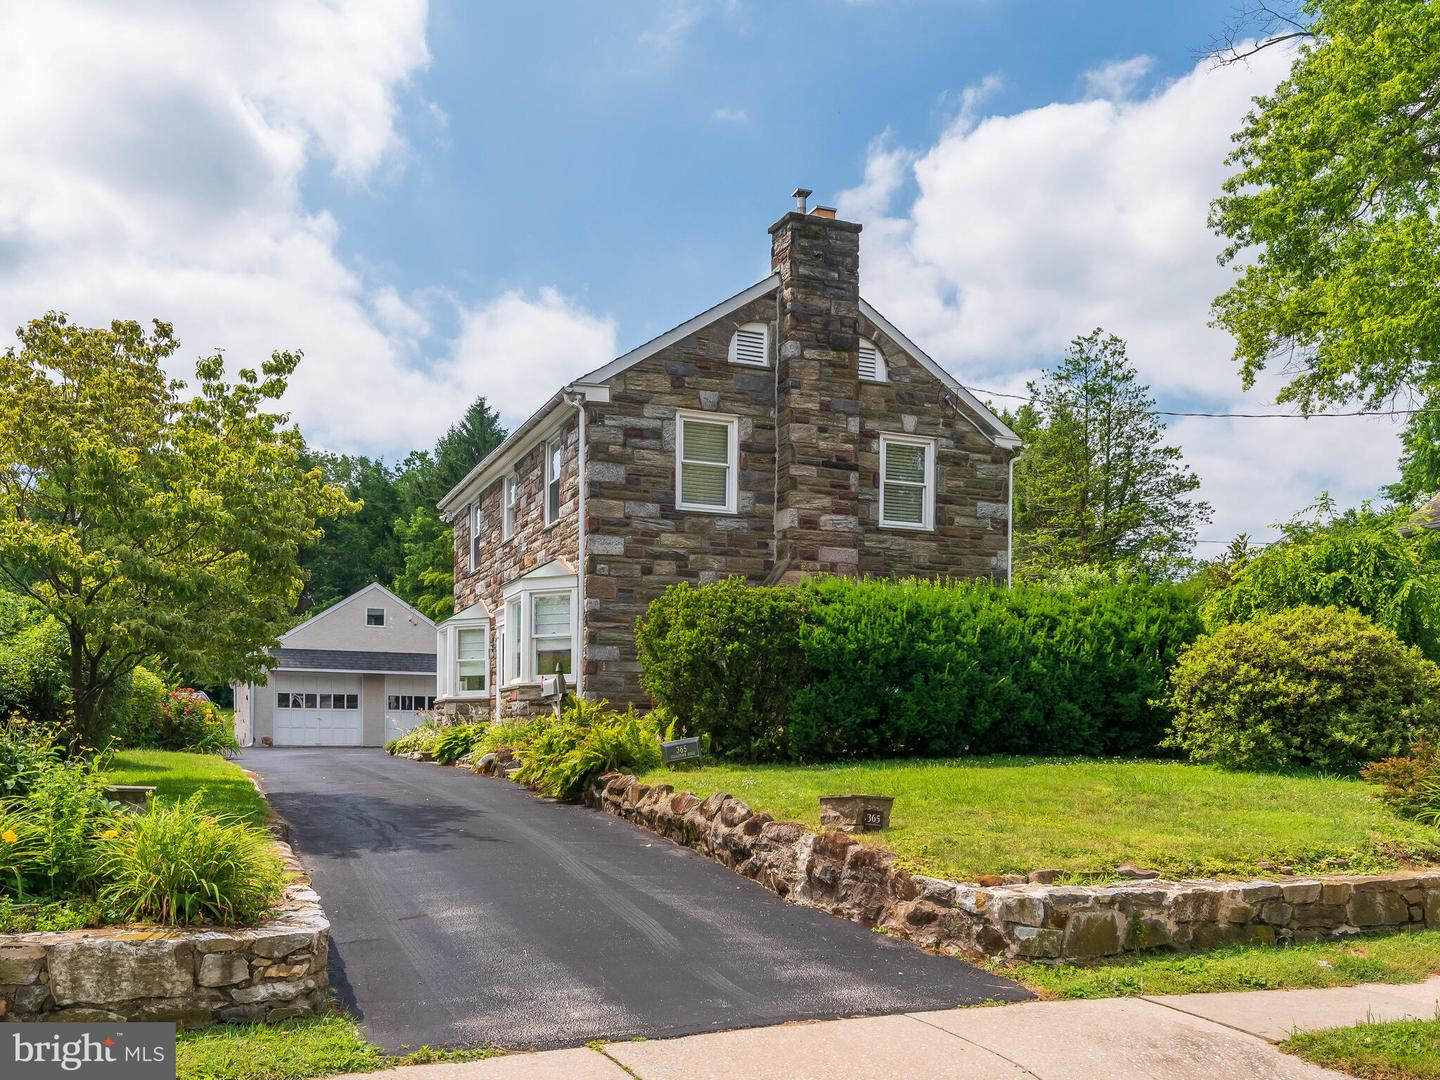 365 Sugartown Road Wayne, PA 19087